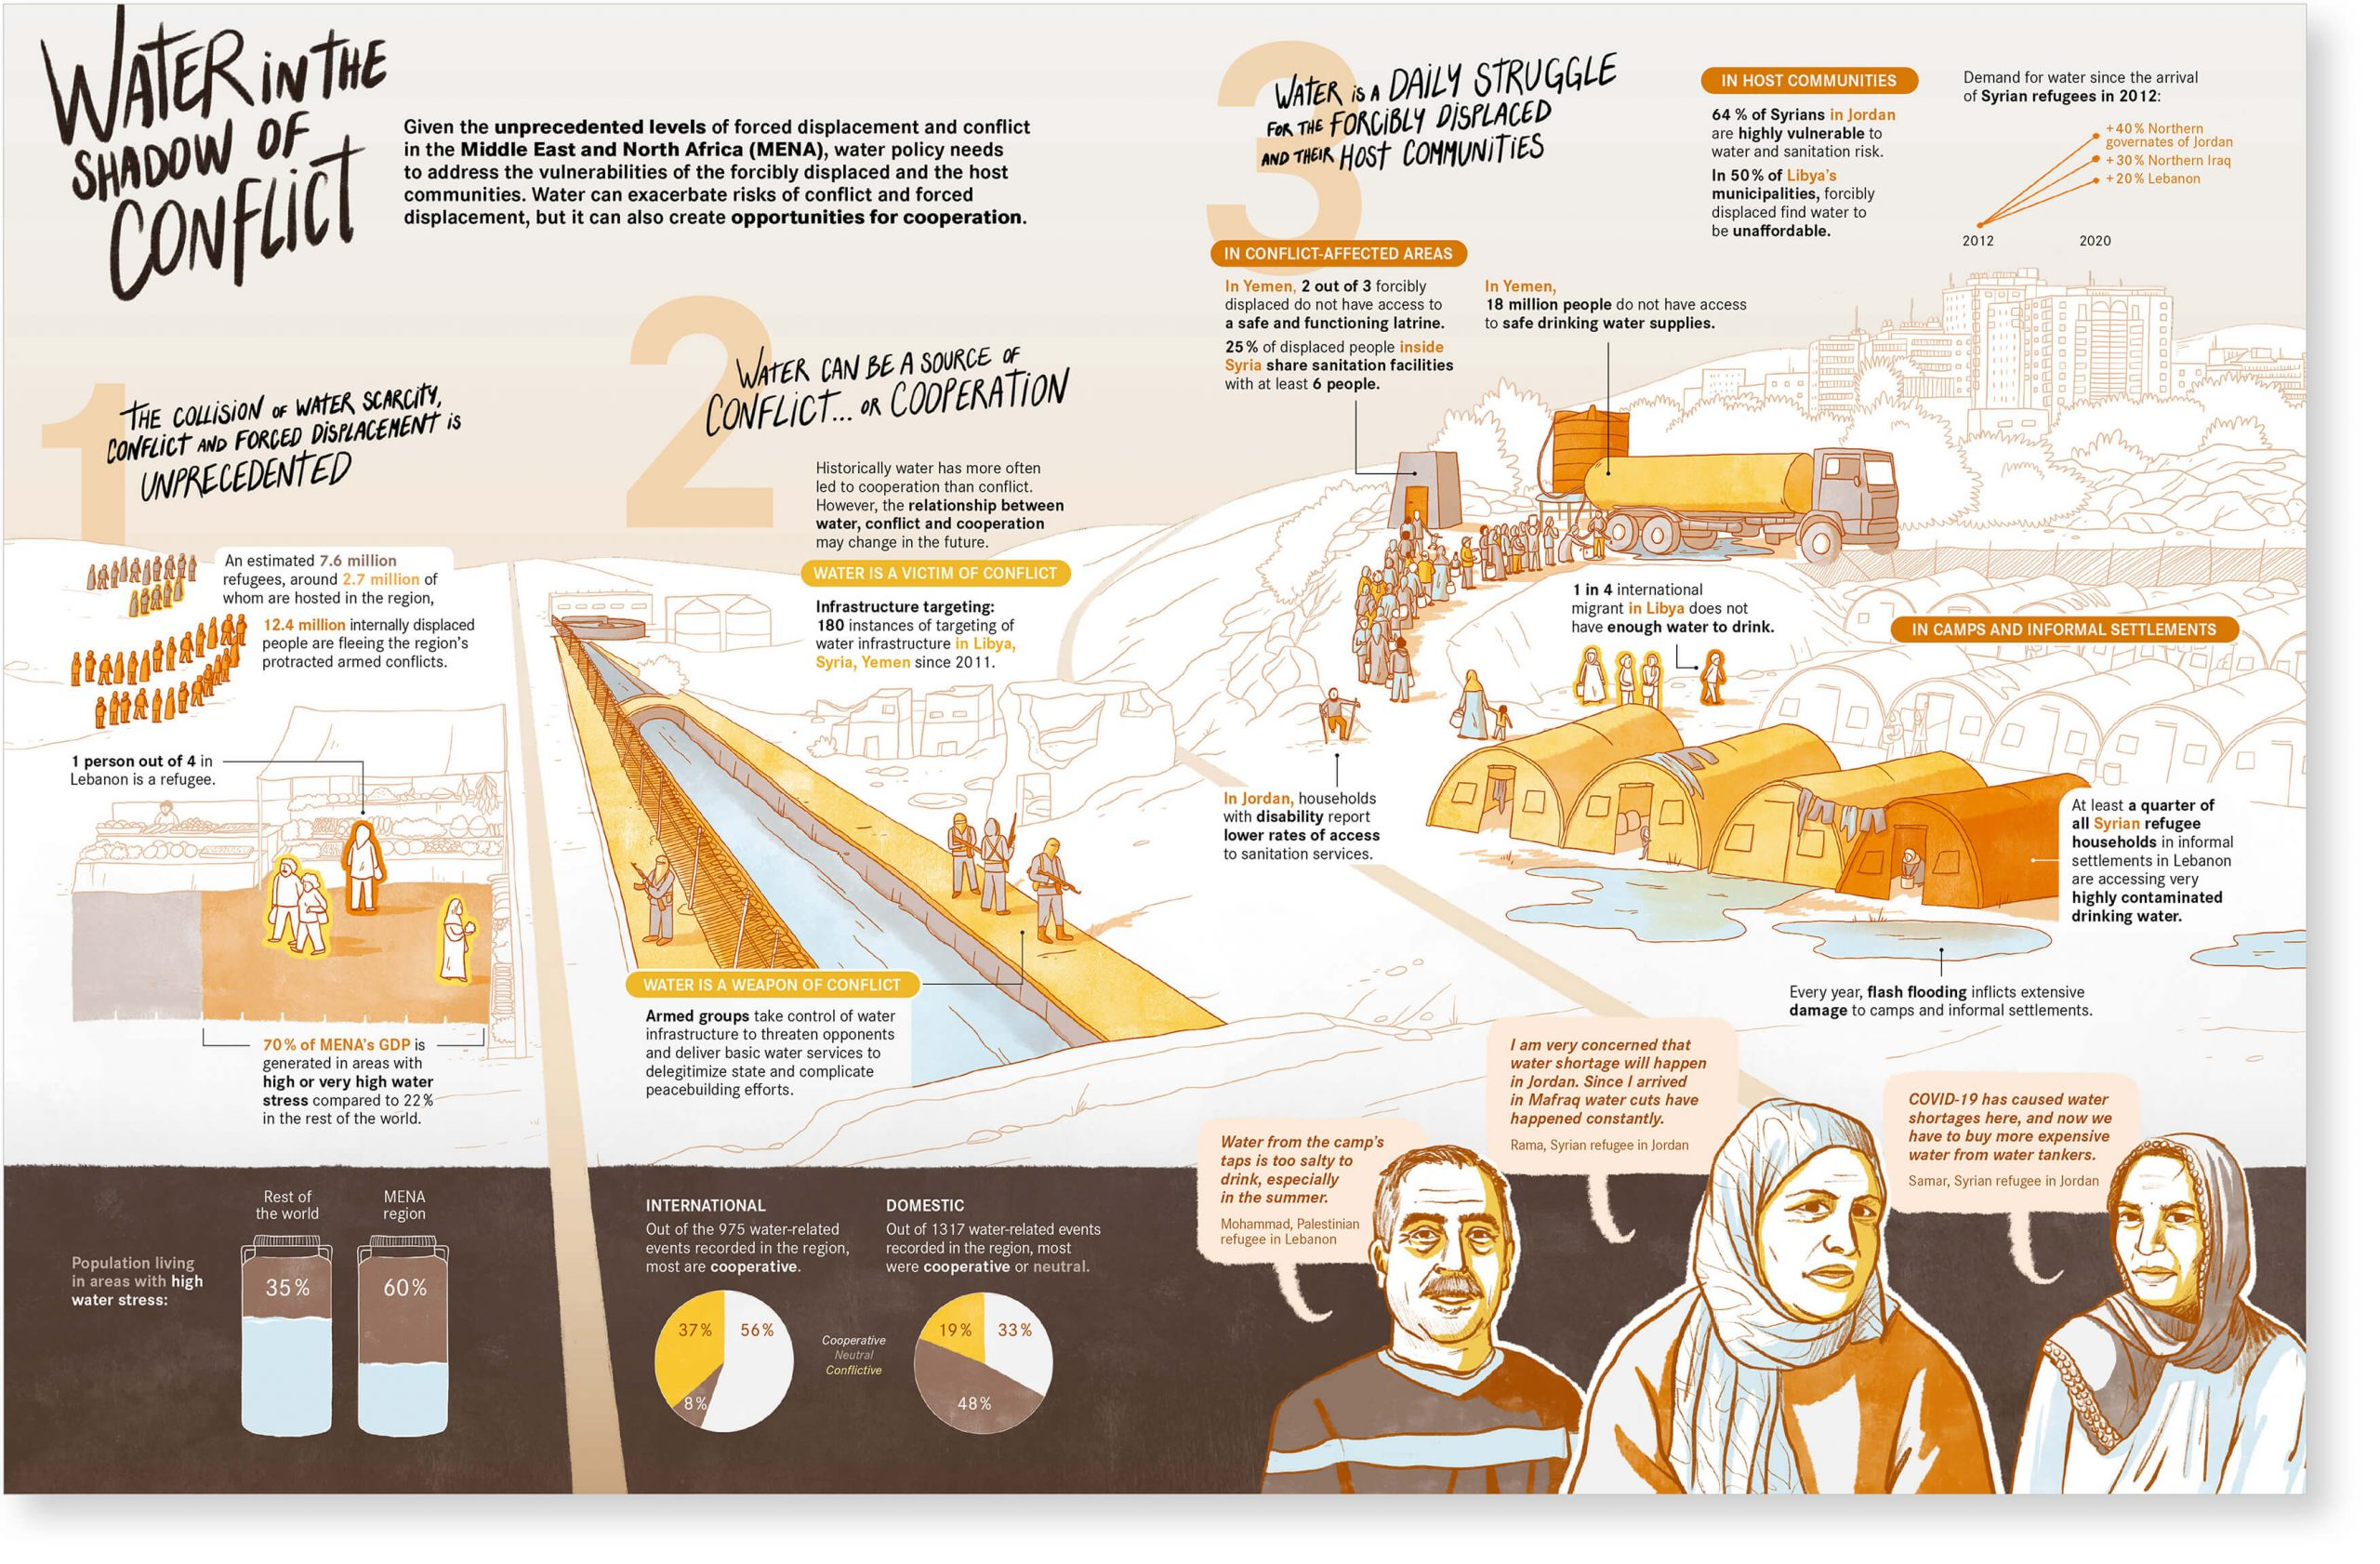 Infographic composed of texts, an illustration, graphs and portraits